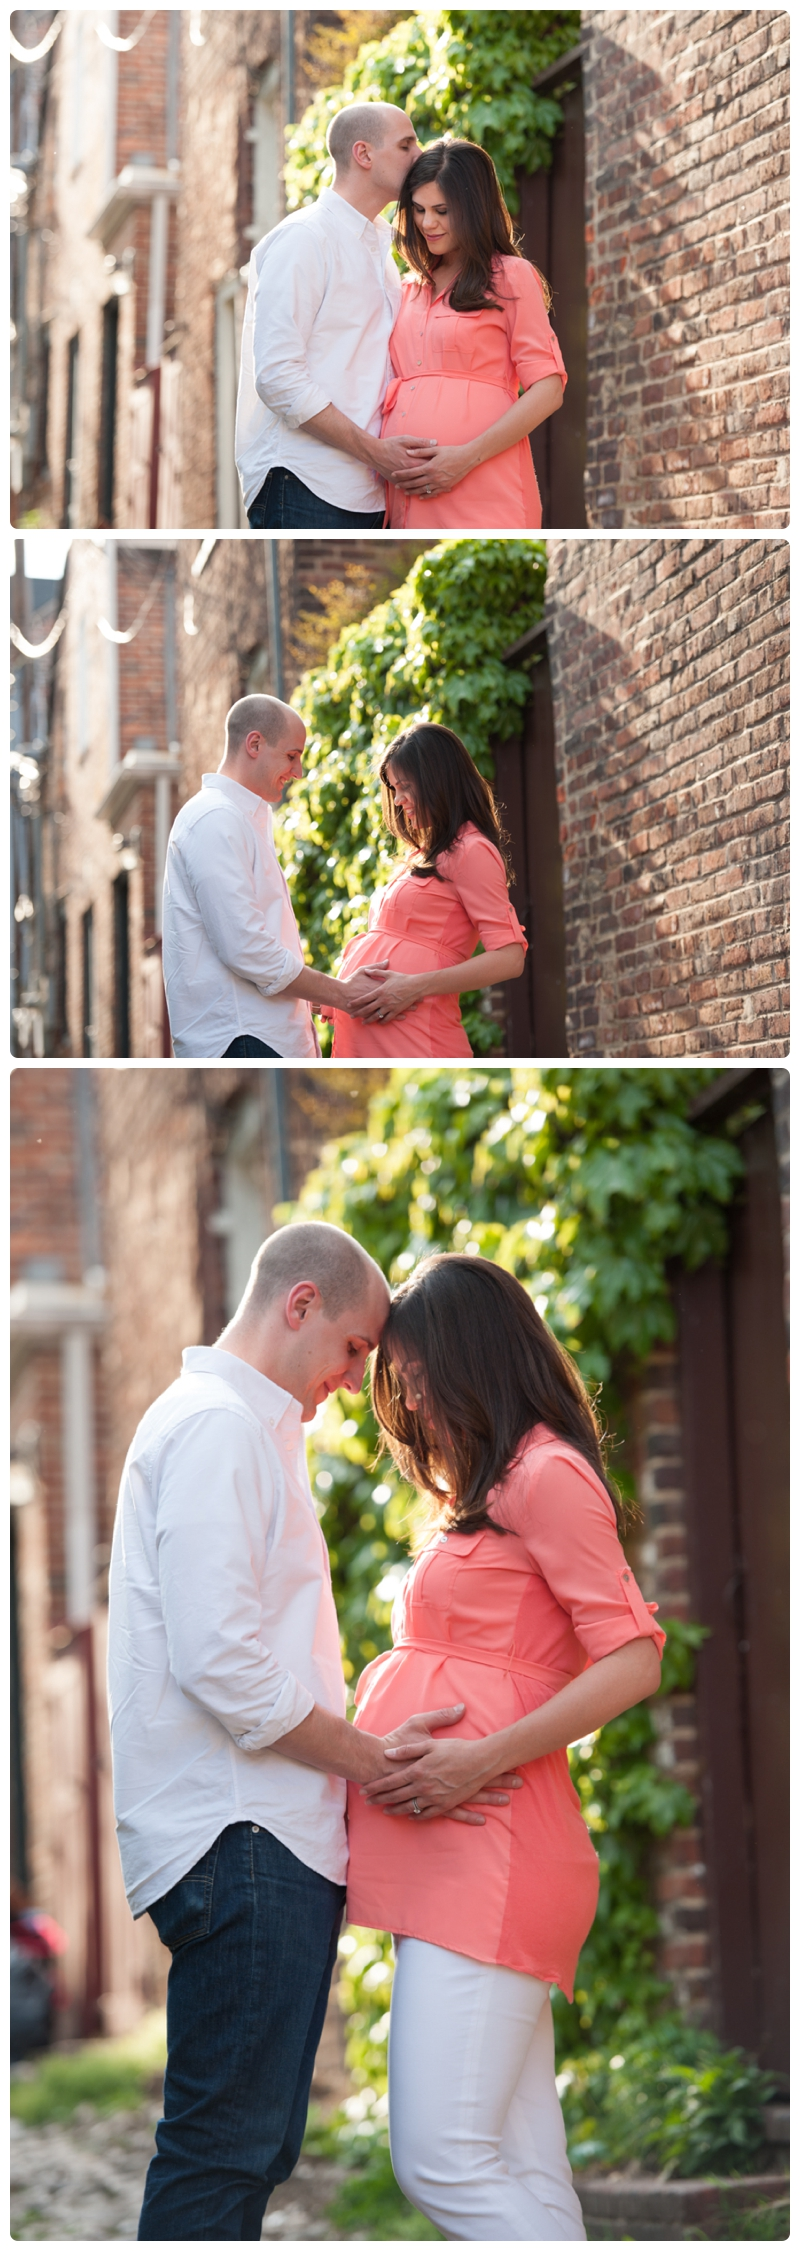 Maternity Session in Old Town Alexandria Virginia_0024.jpg